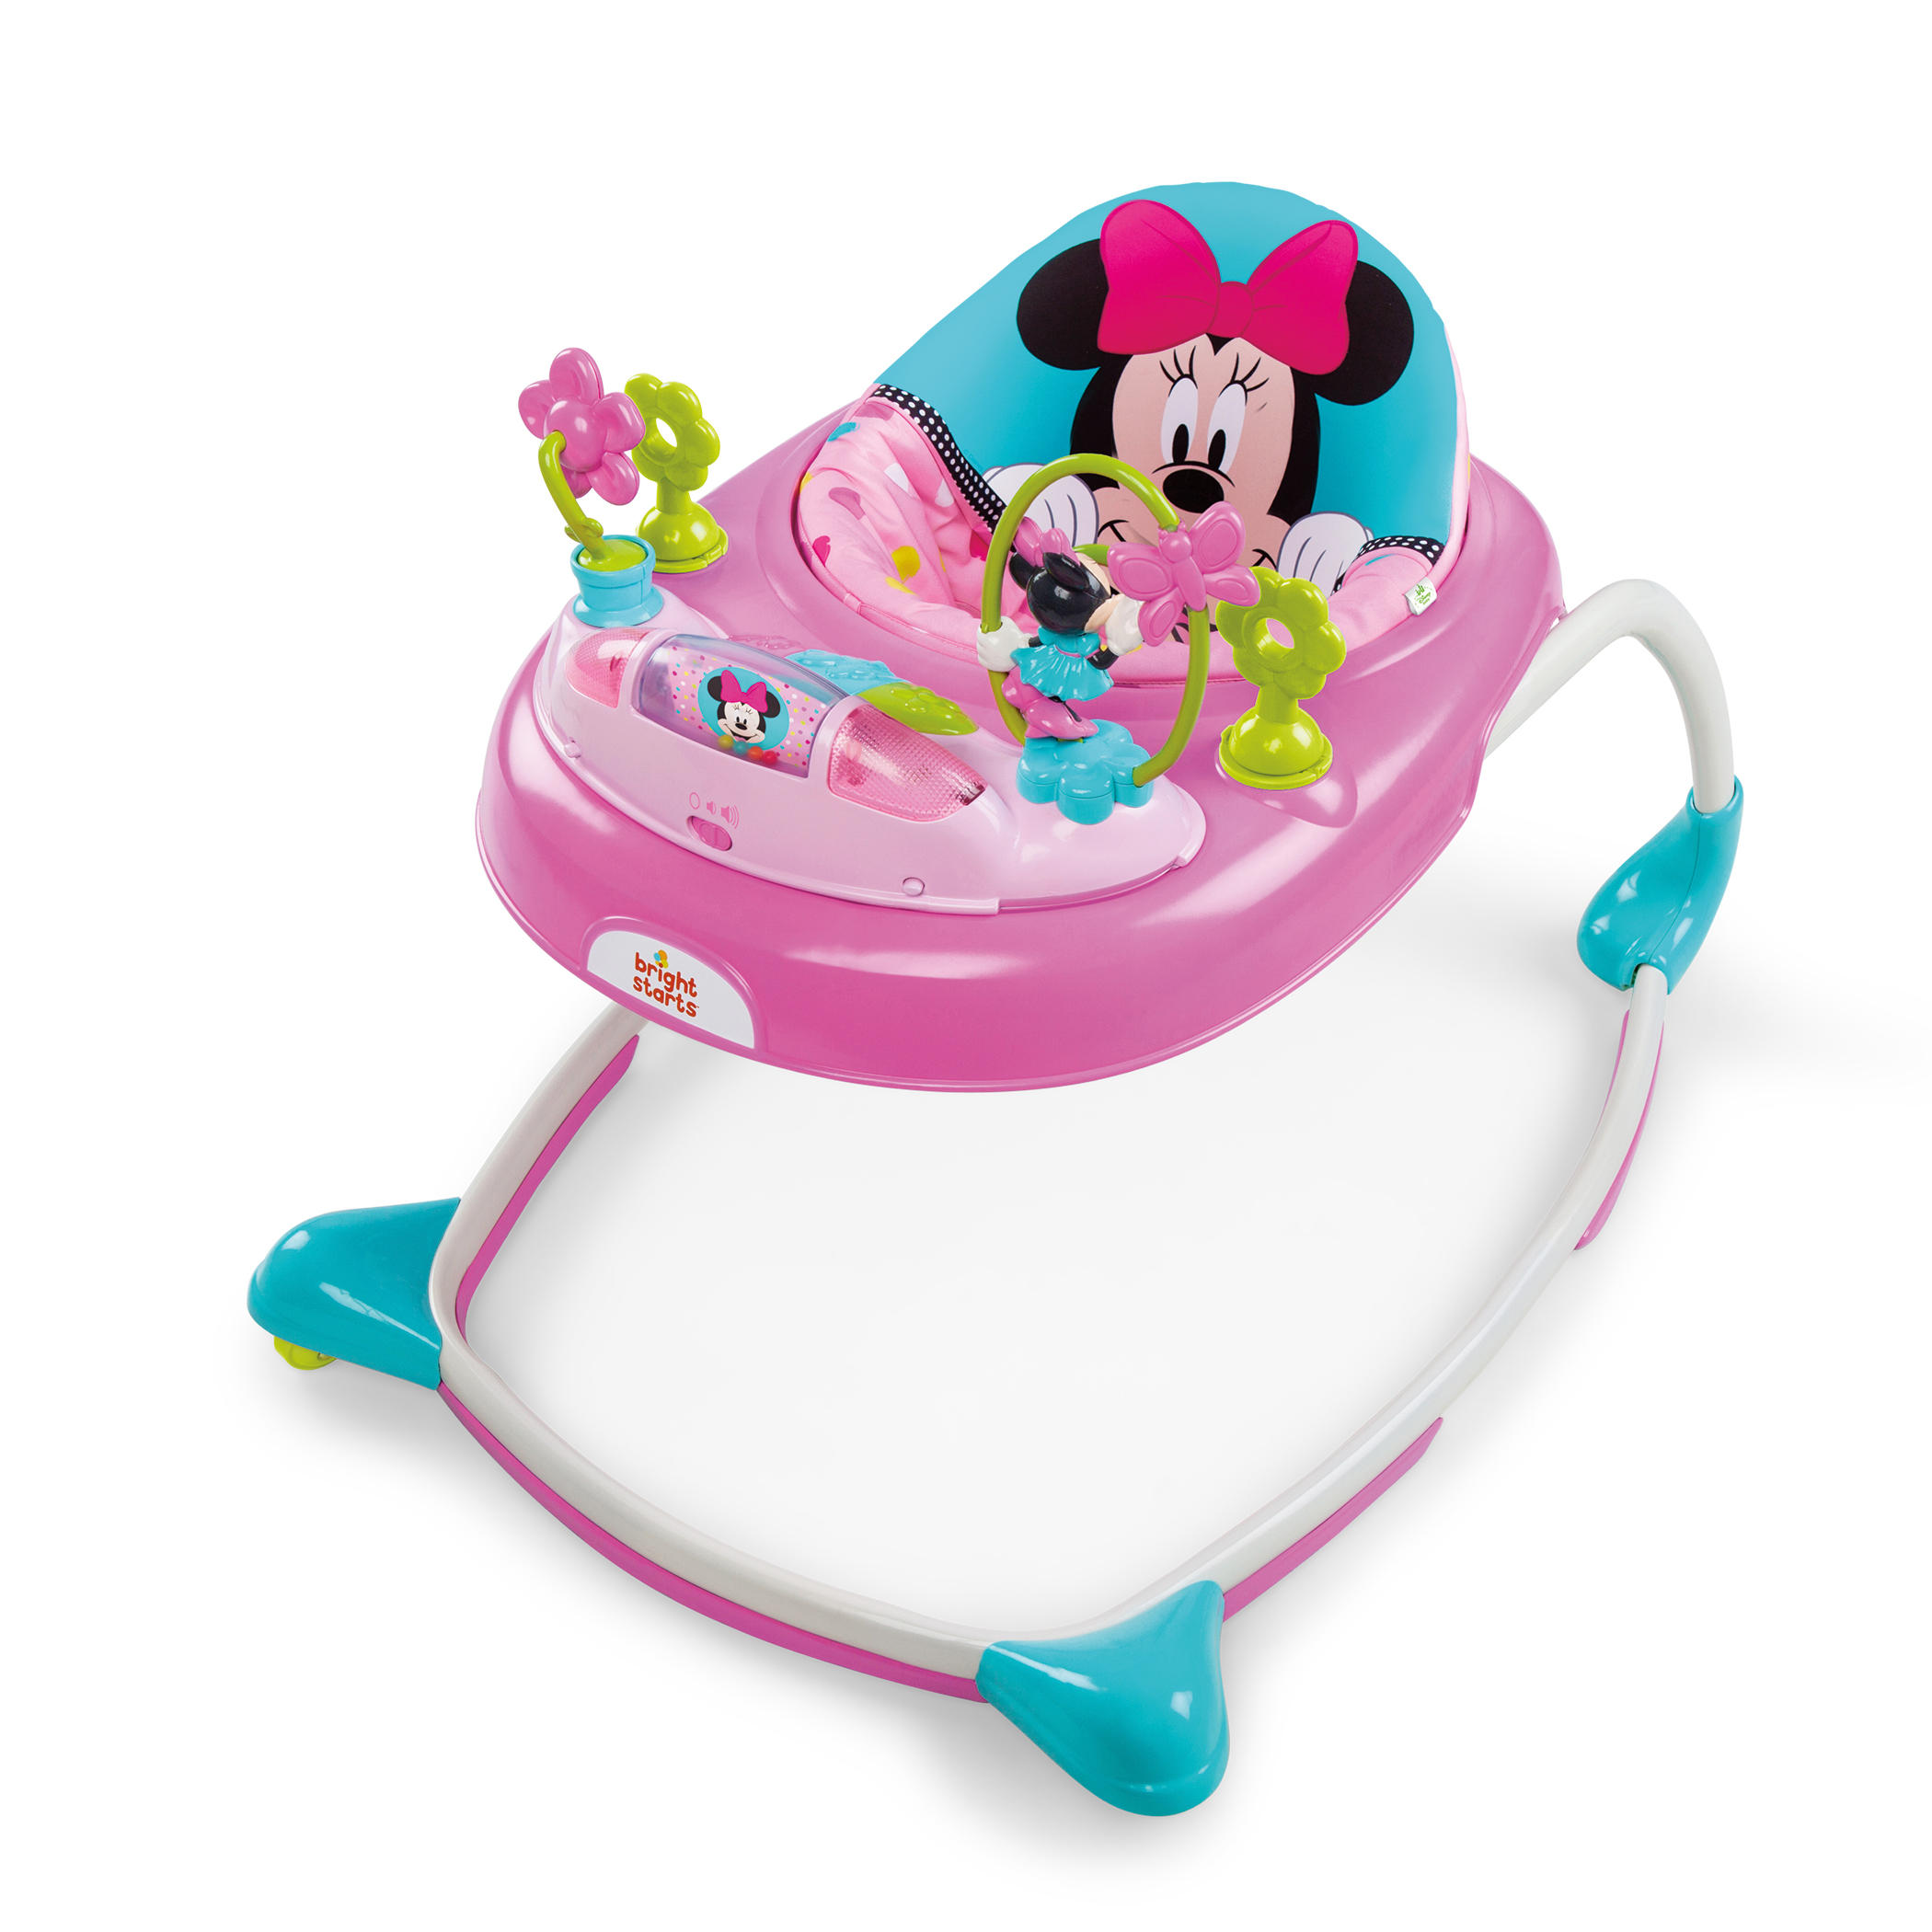 Disney Baby MINNIE MOUSE PeekABoo Walker